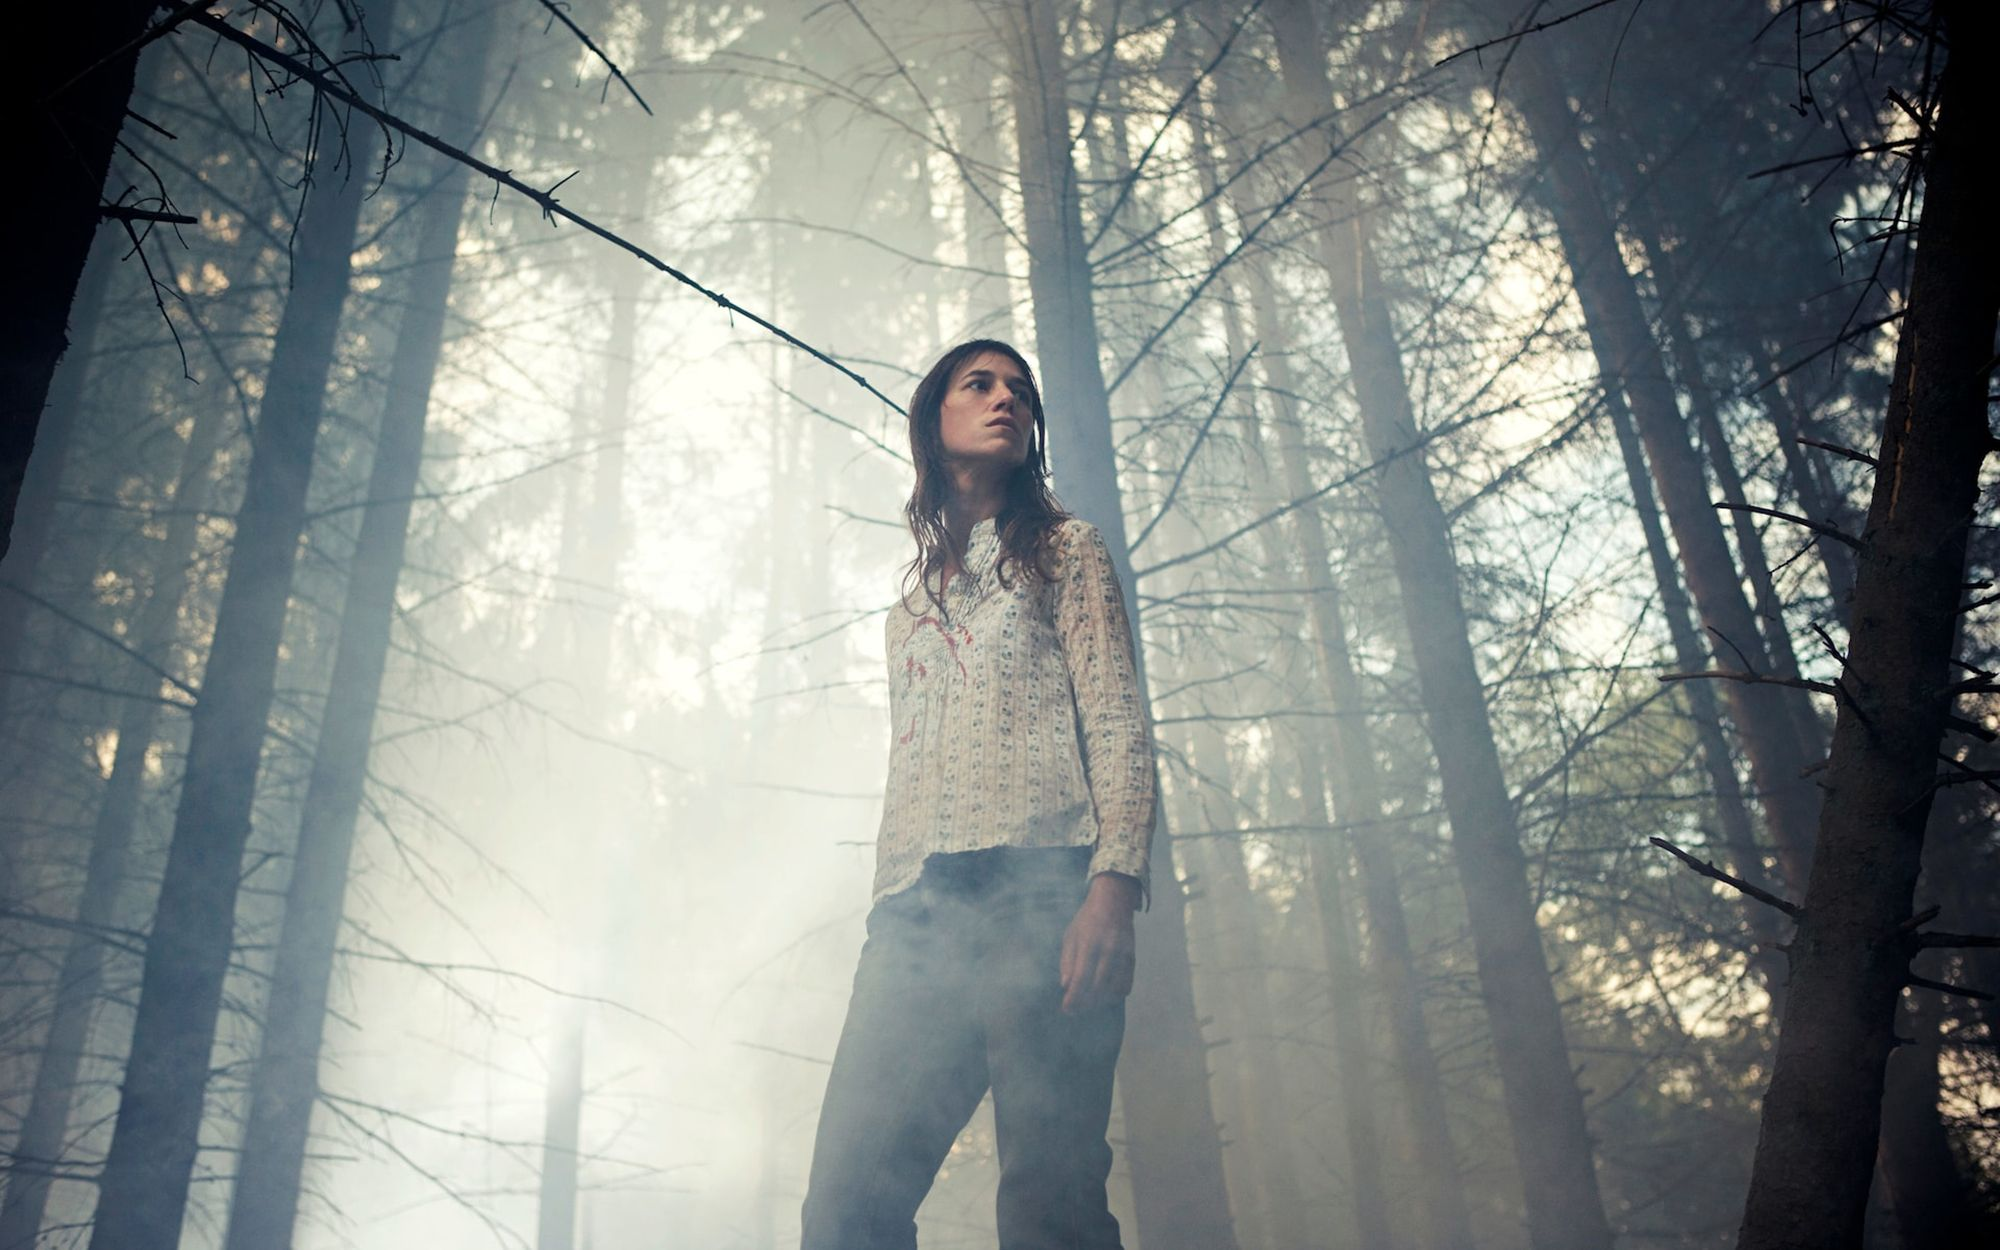 film still from antichrist movie